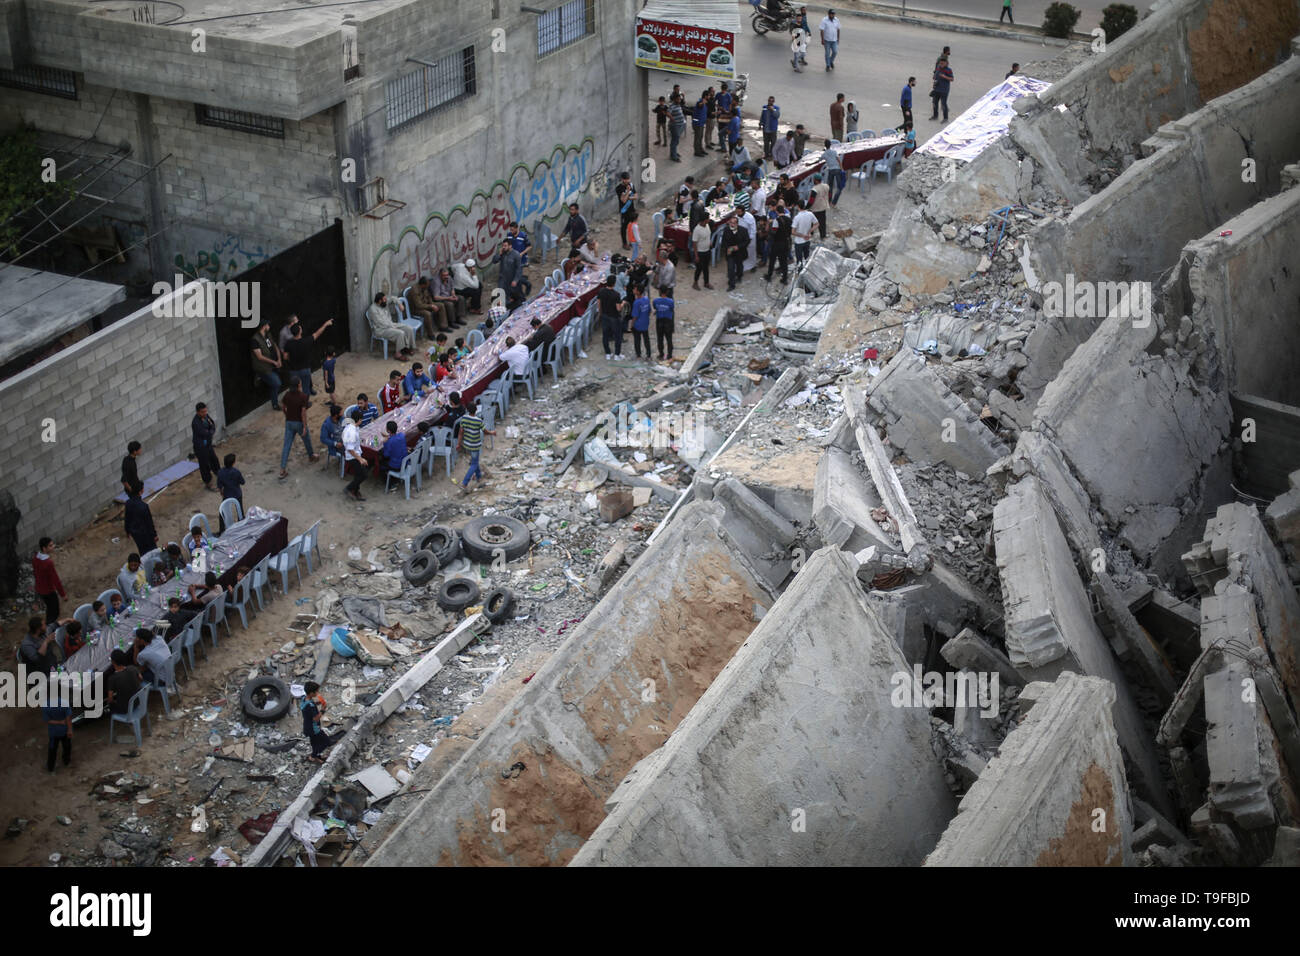 Gaza, Palestinian Territories. 19th May, 2019. Palestinian families break their fast during the Muslim holy fasting month of Ramadan, next to the remains of a building that was destroyed during Israeli air strikes. Credit: Mohammed Talatene/dpa/Alamy Live News - Stock Image